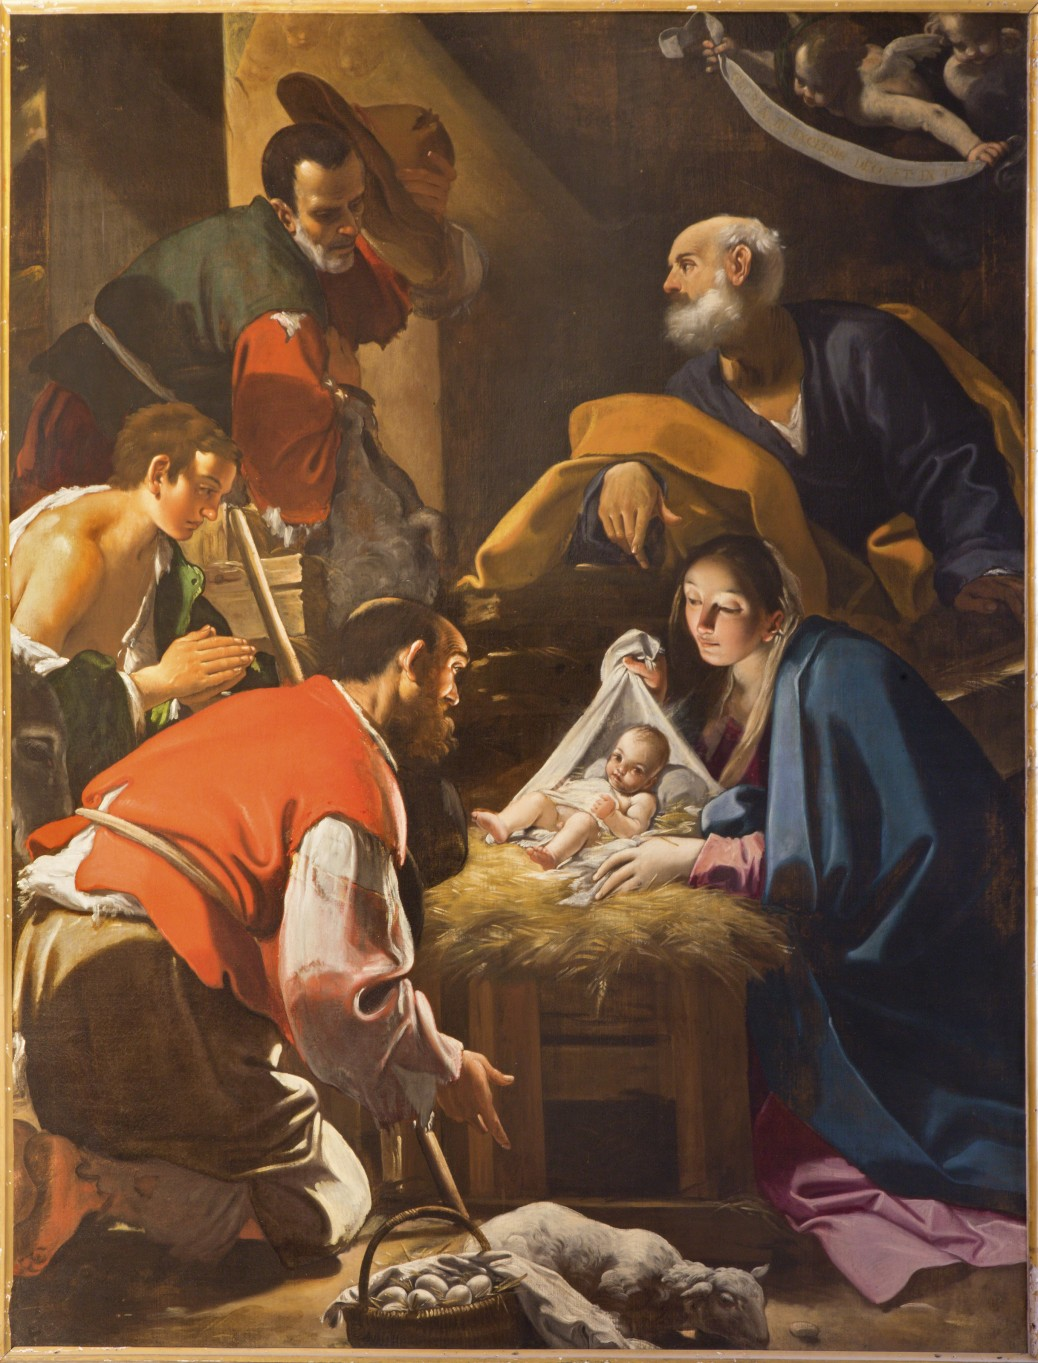 Adoration of the Shepherds by Annibale Carracci, Bologna